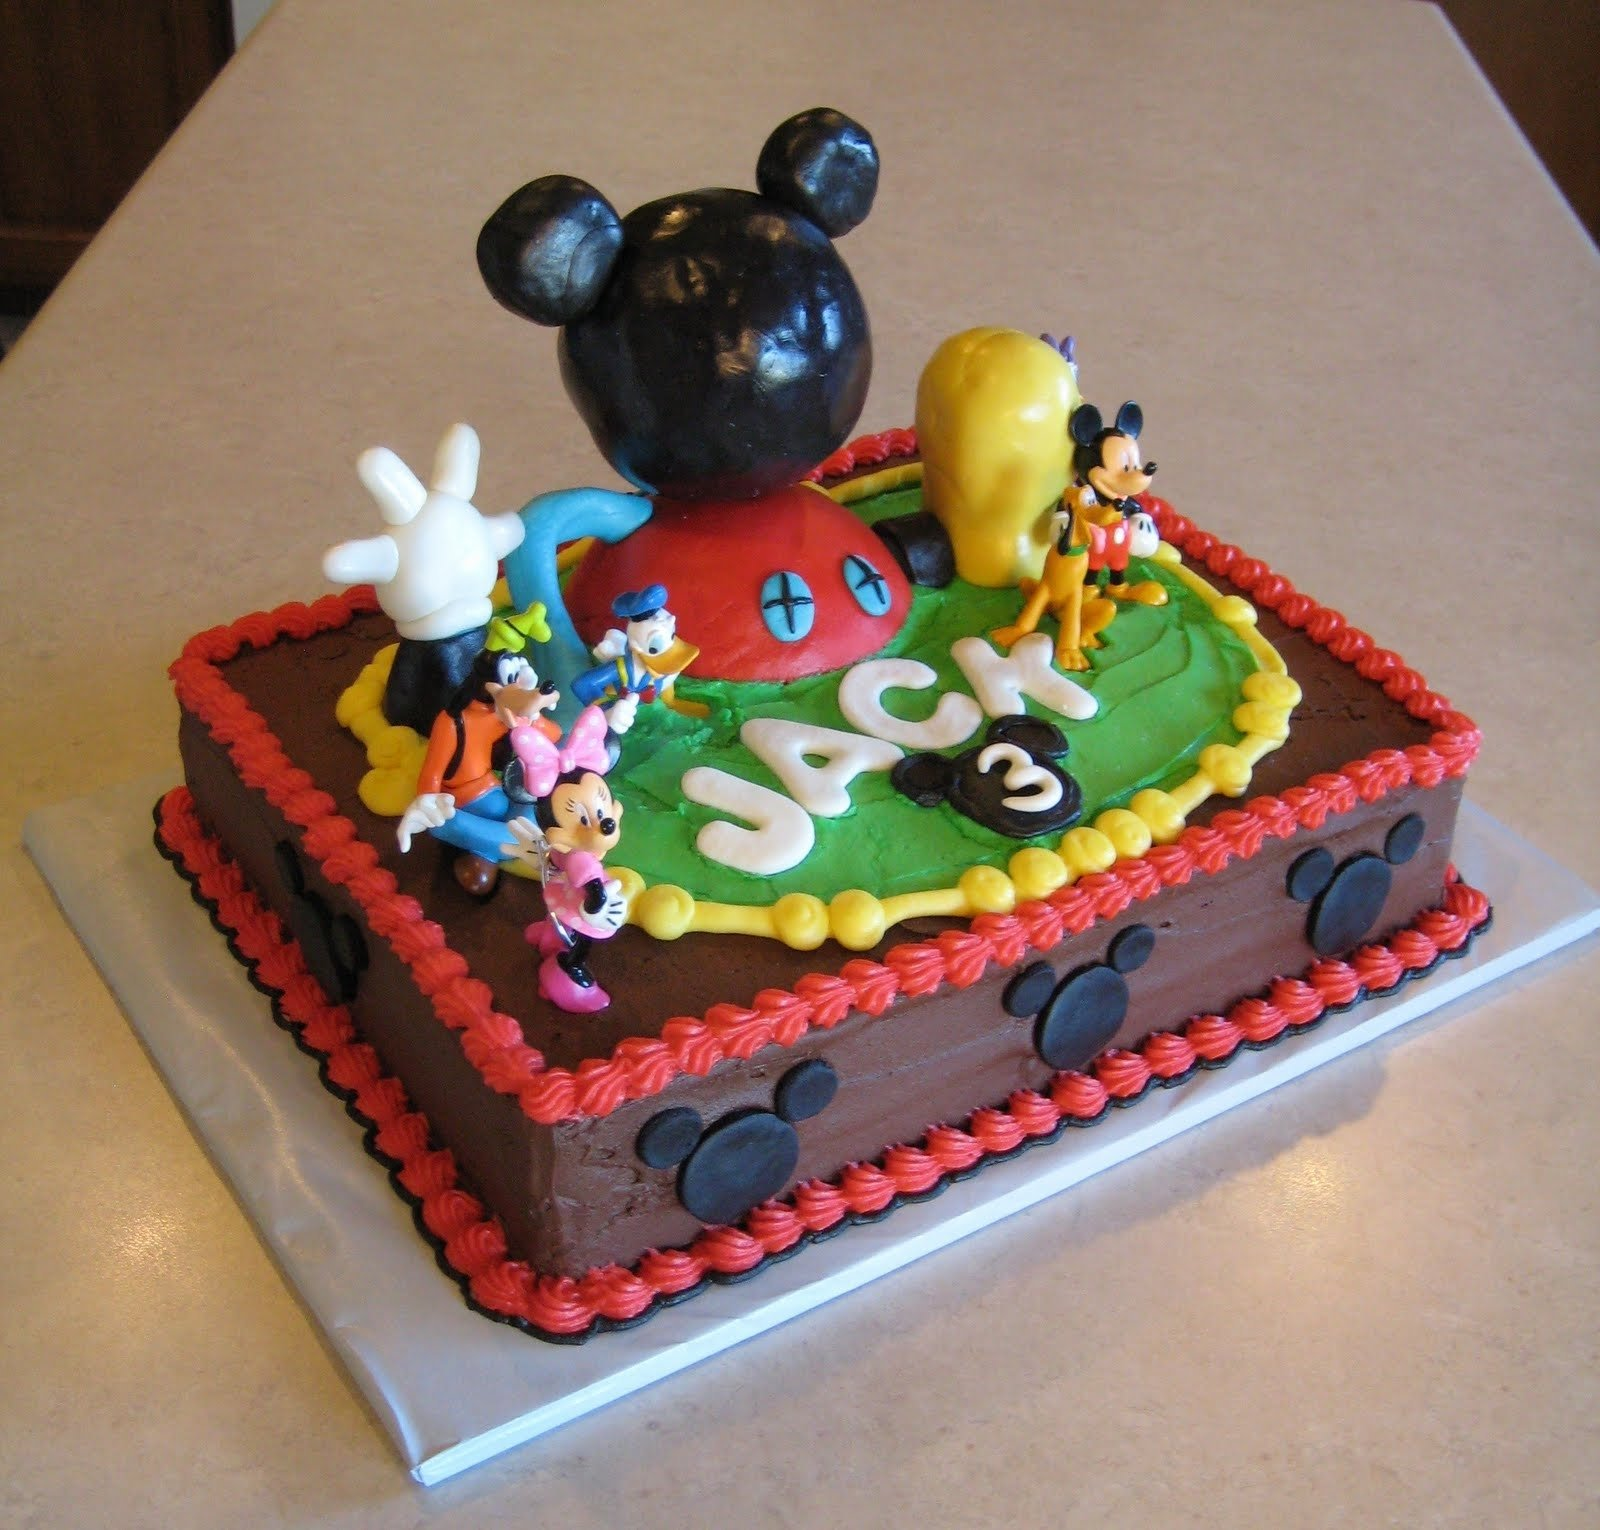 10 Most Popular Mickey Mouse Birthday Cake Ideas mickey mouse cake decoration ideas little birthday cakes 2 2020